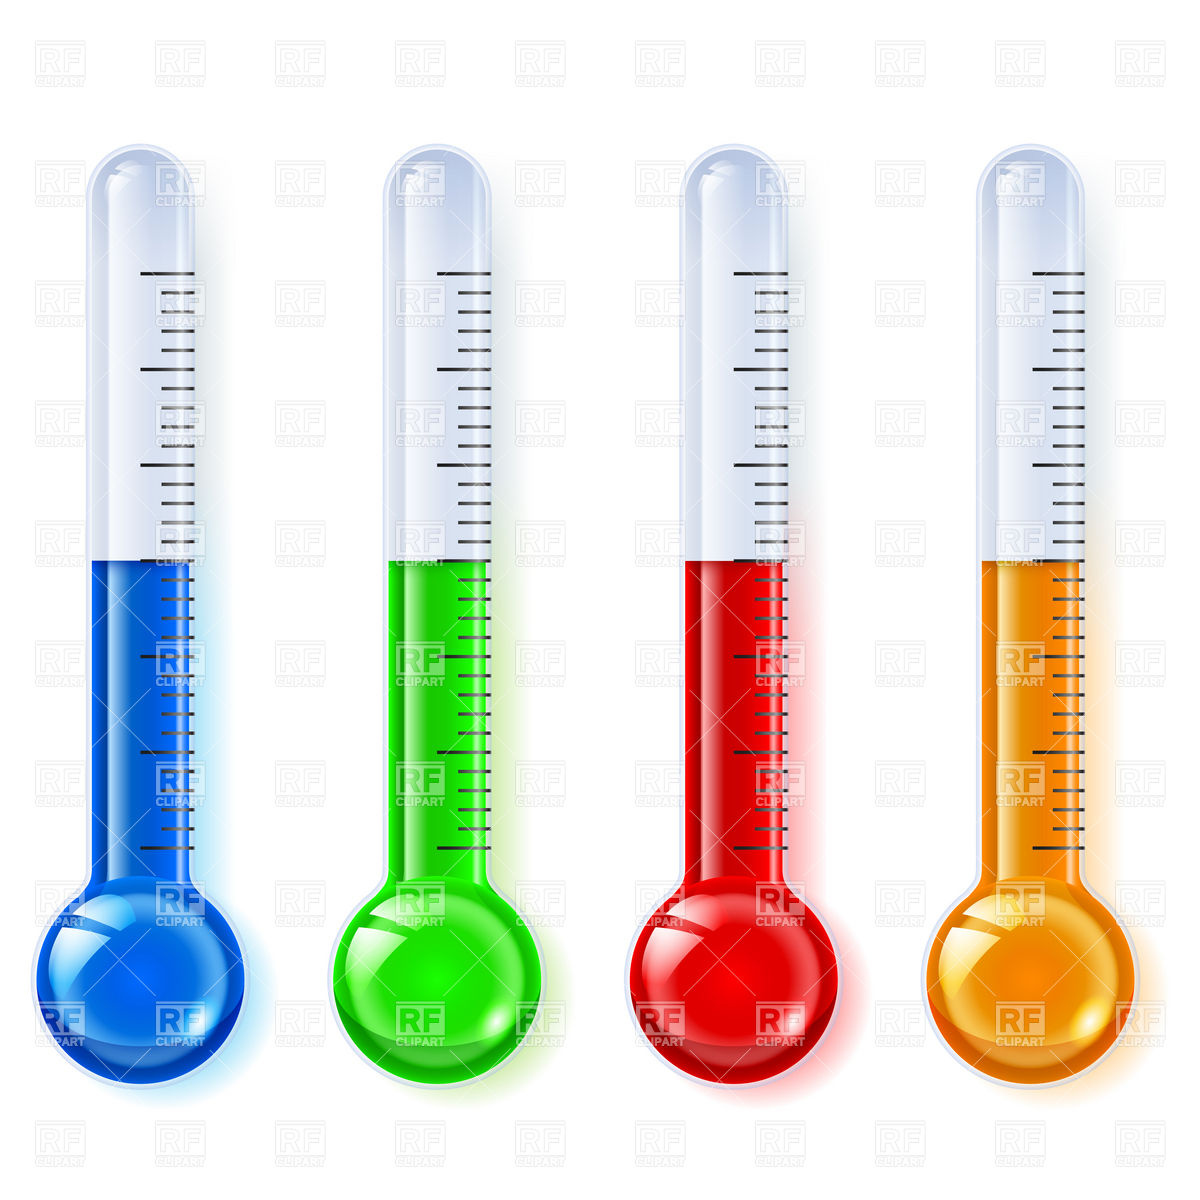 1200x1200 Temperature Indicators, Thermometer Royalty Free Vector Clip Art